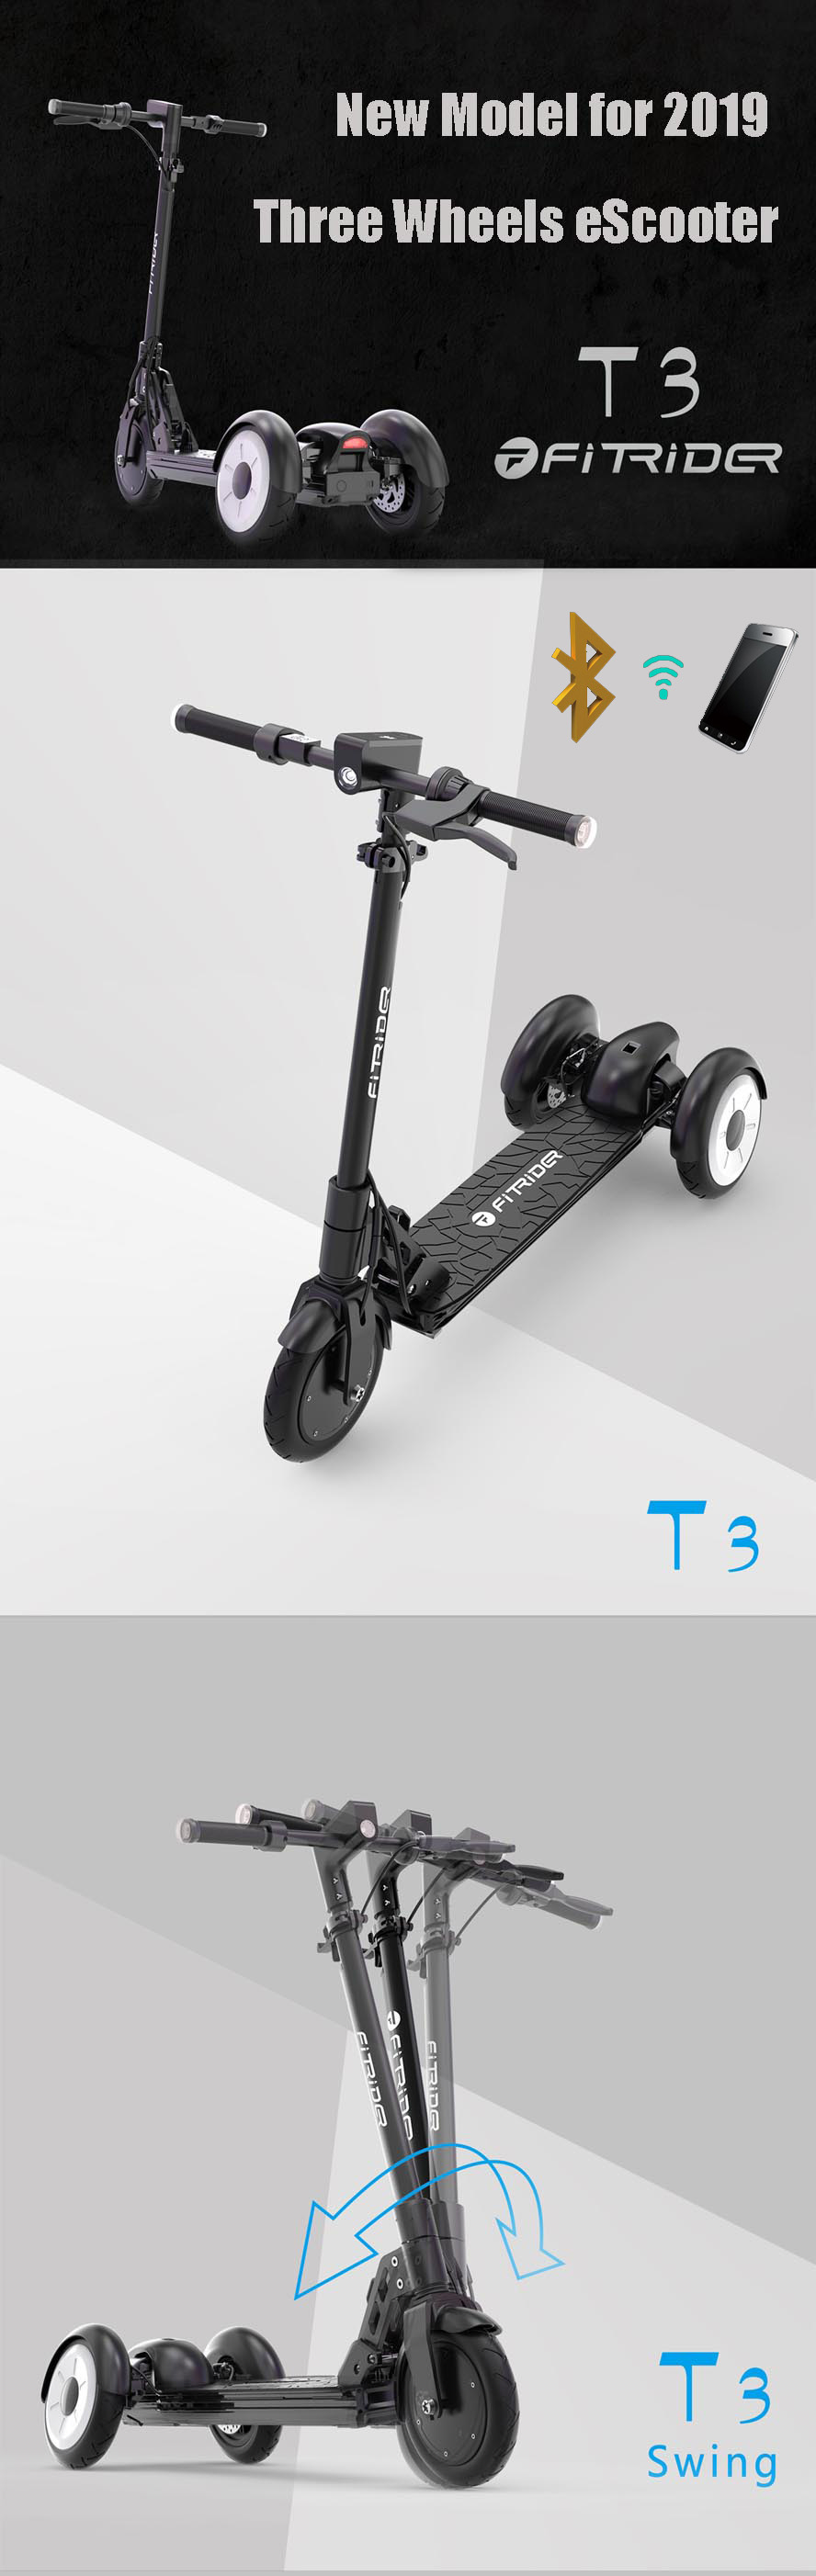 FitRider T3 electric scooter three wheels